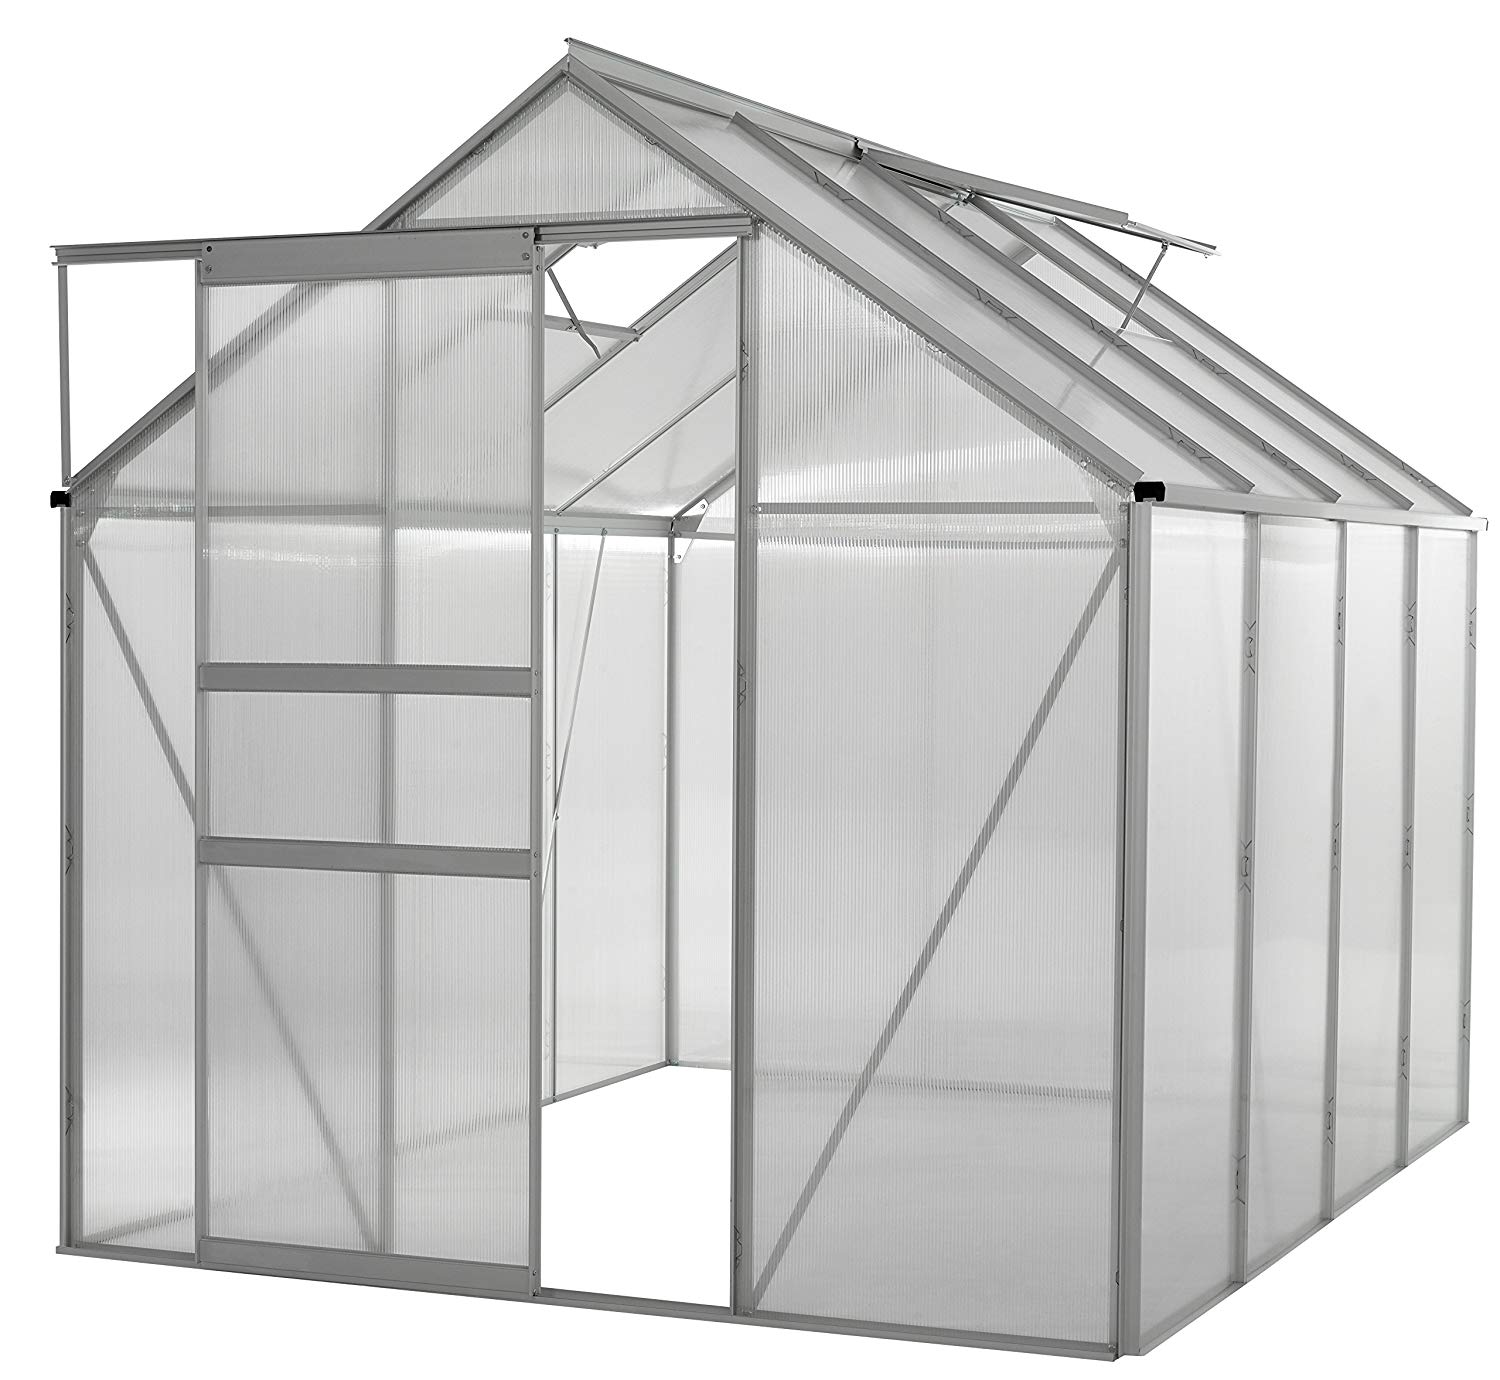 $410.00 -$500.00 Walk-in Lawn and Garden Greenhouse (Price varied by size)